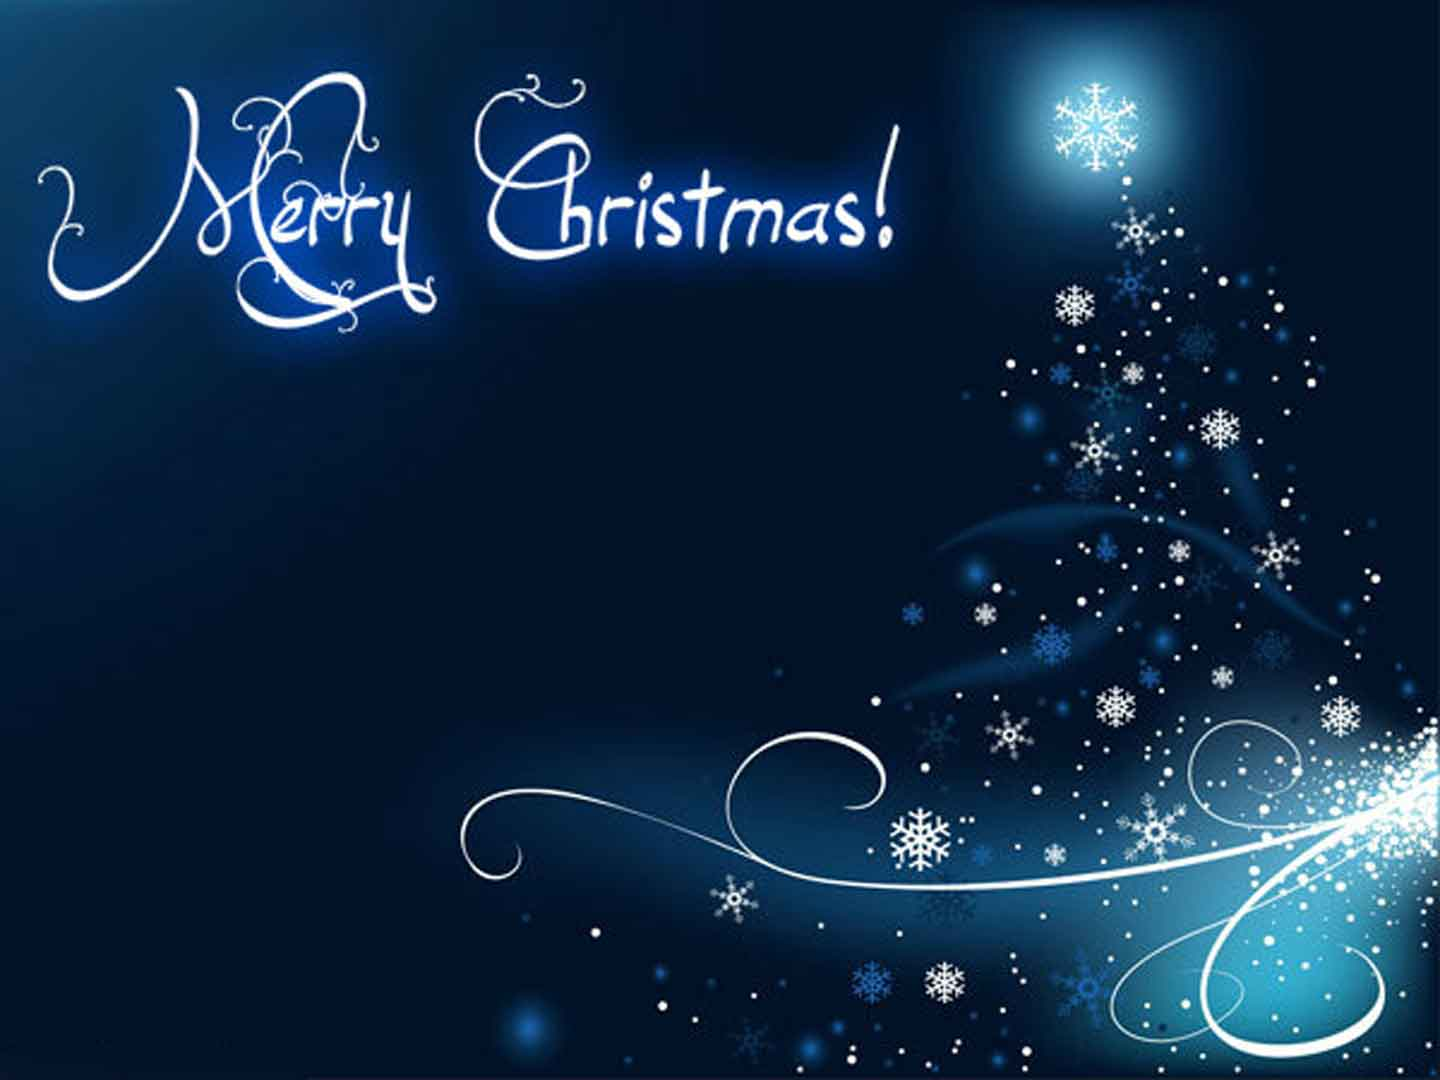 merry christmas wallpapers - wallpaper cave